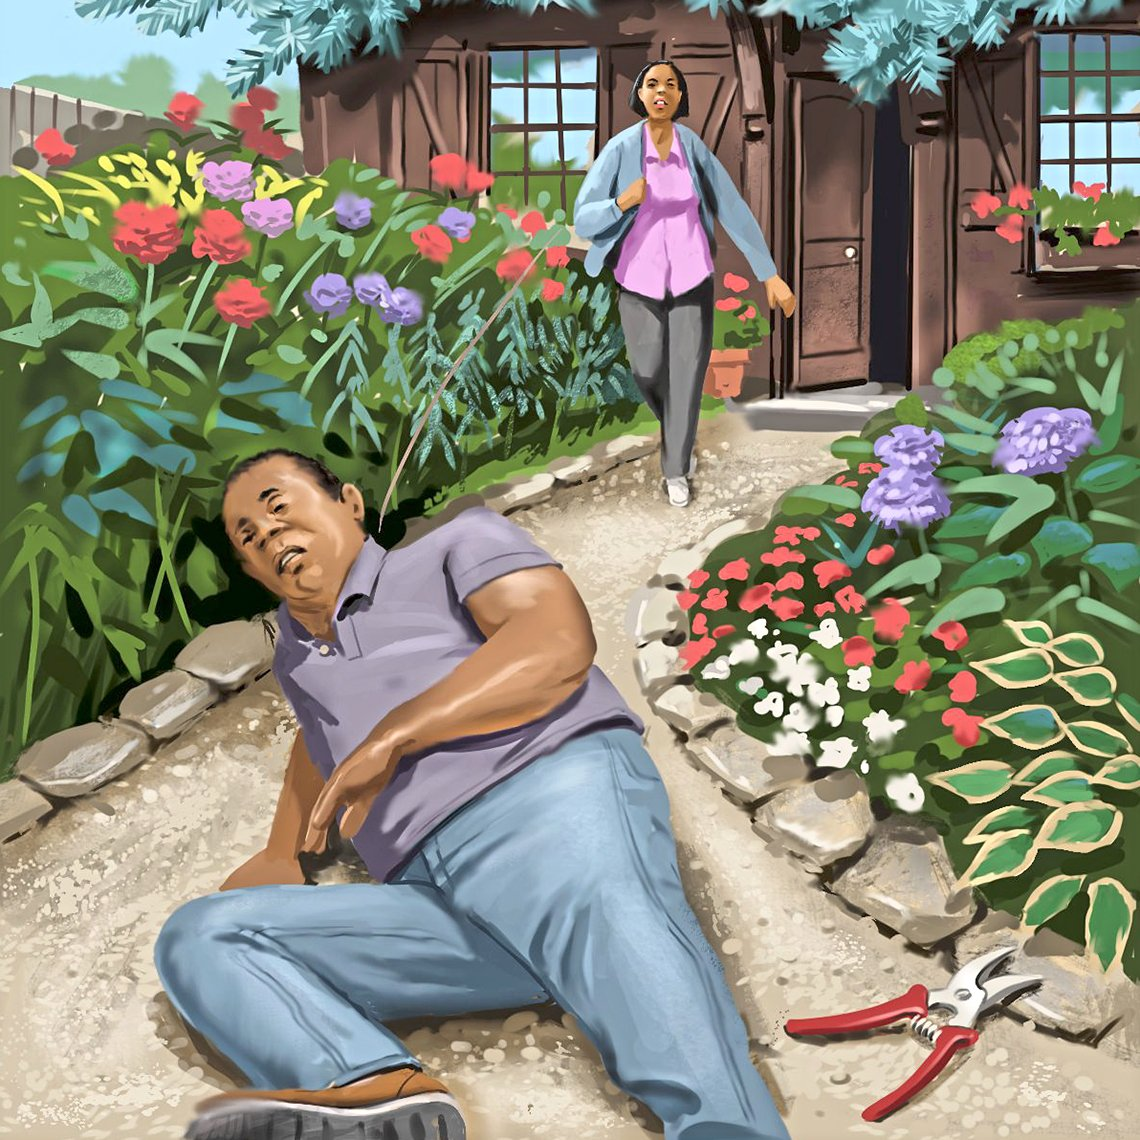 lllustration of a man who has fallen down on the walkway leading up to his home and his wife running out to assist